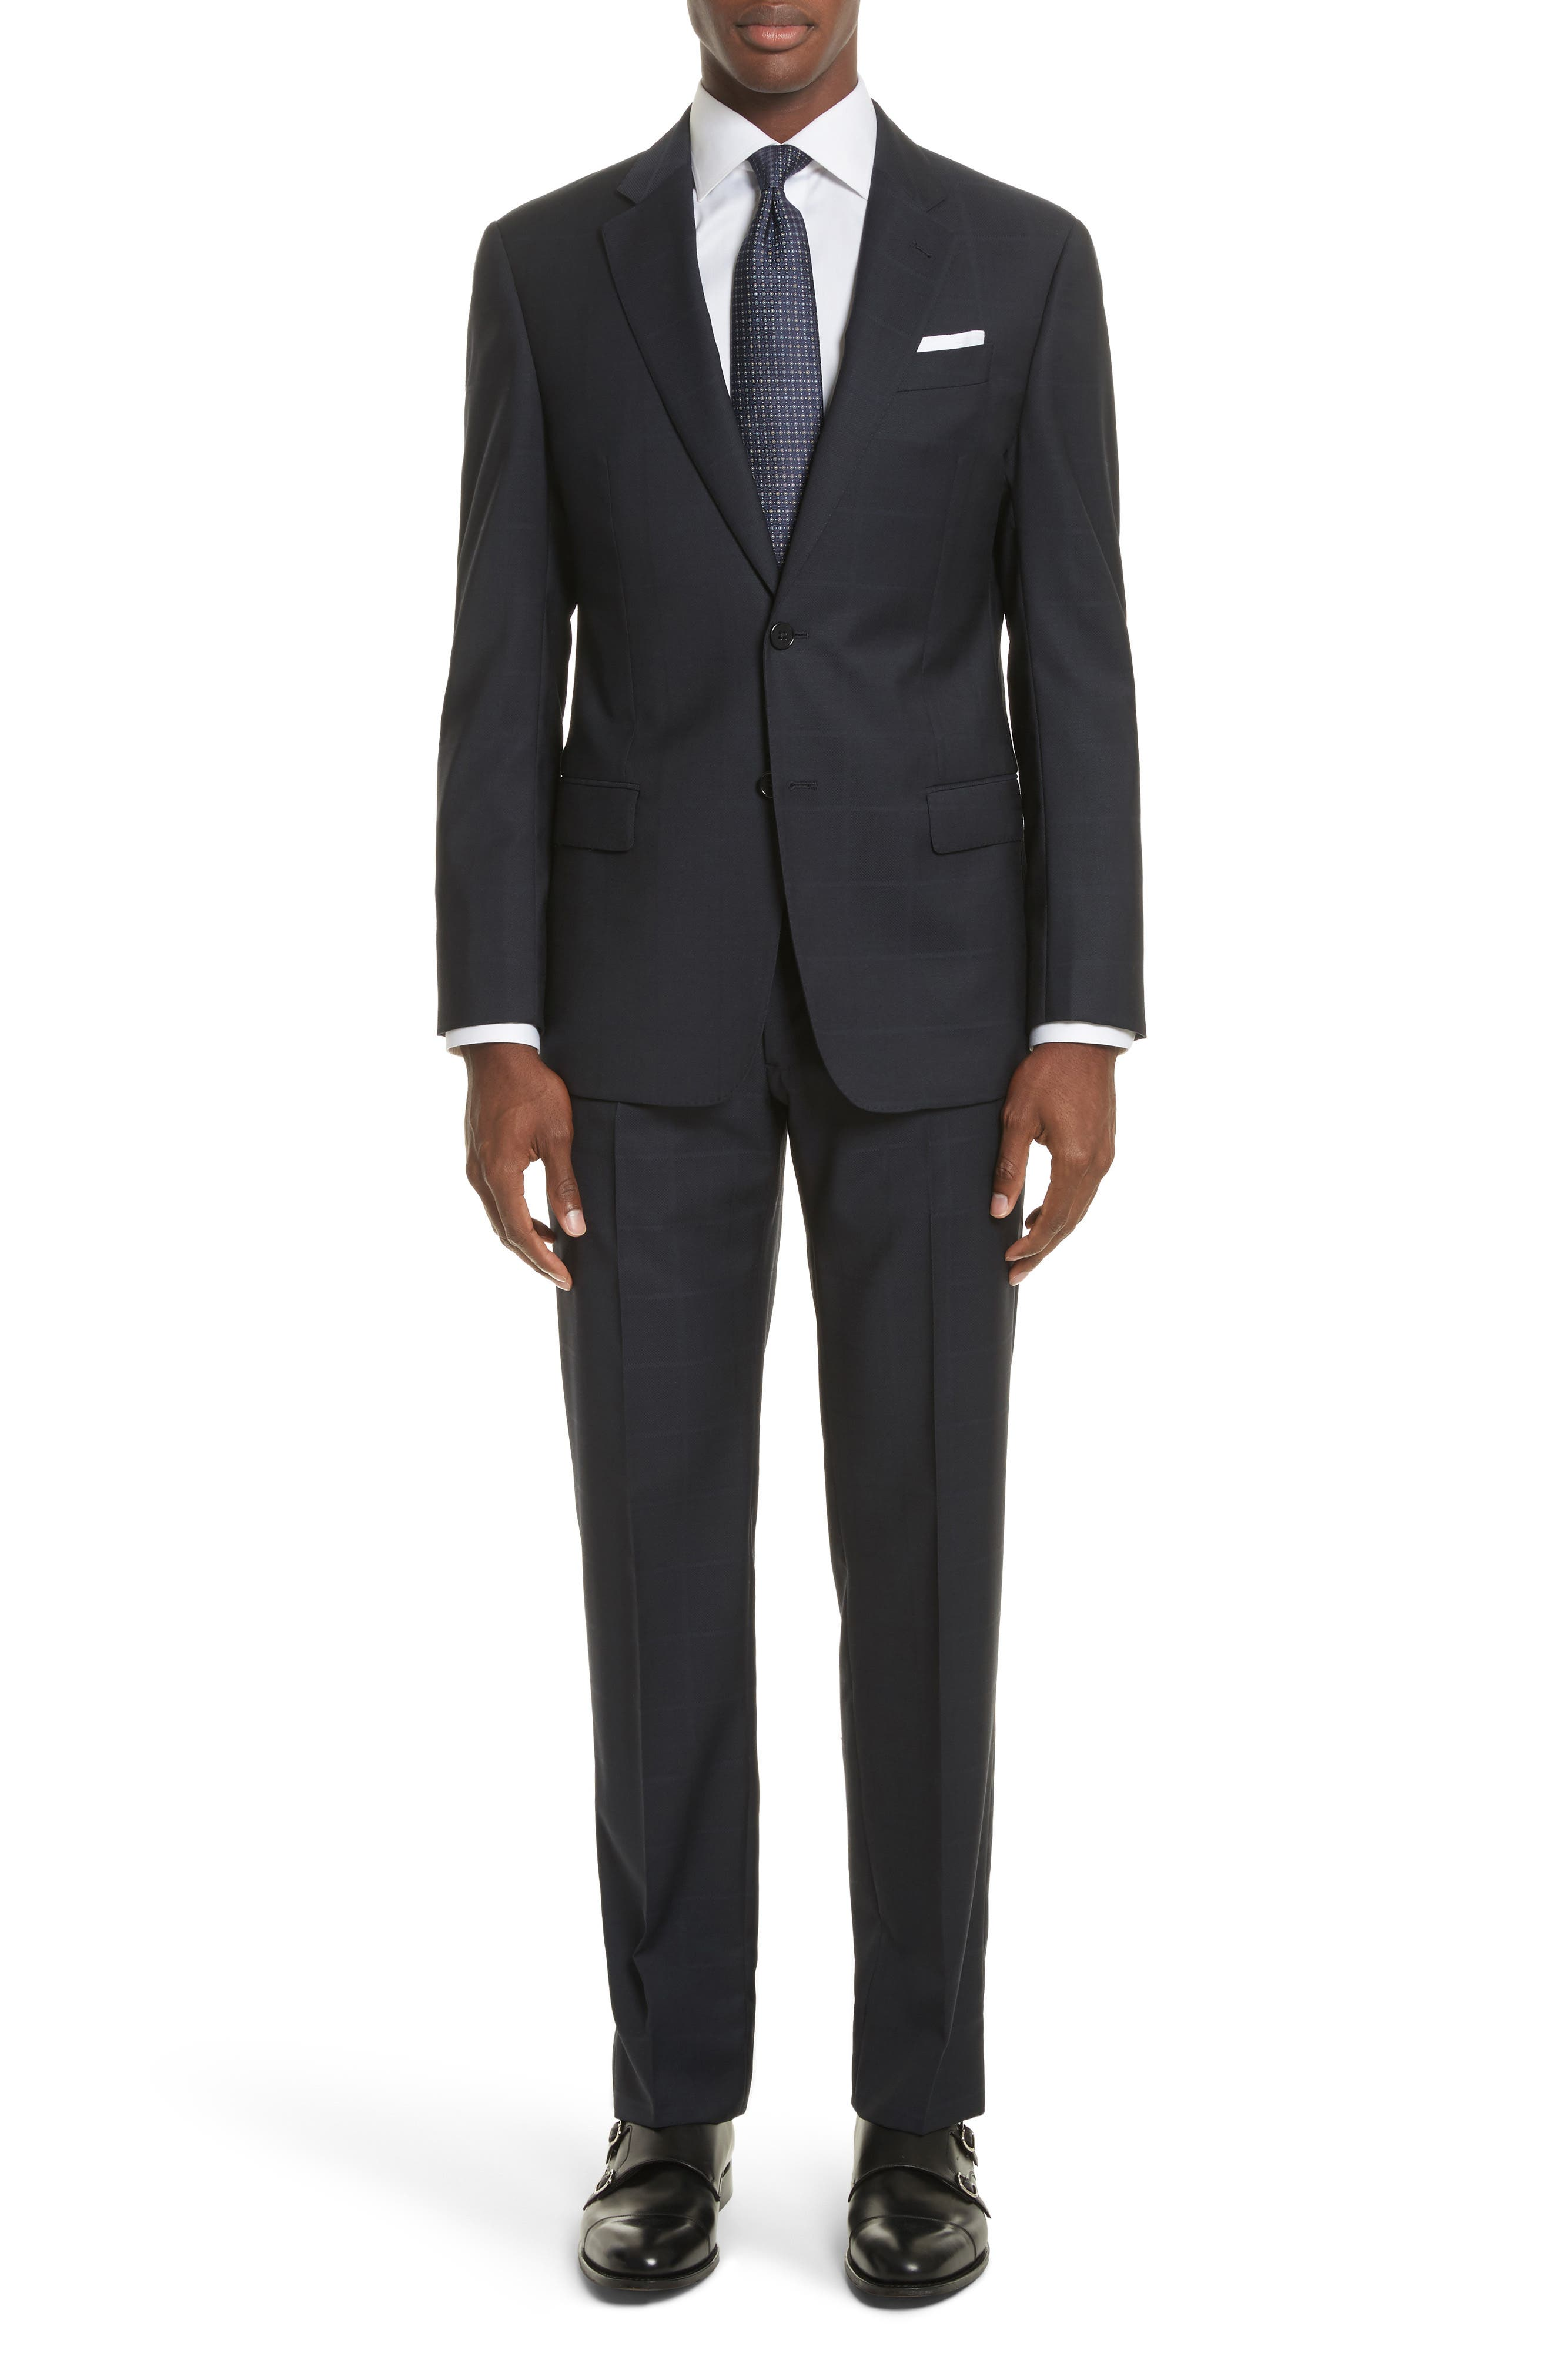 Alternate Image 1 Selected - Armani Collezioni G-Line Trim Fit Windowpane Wool Suit